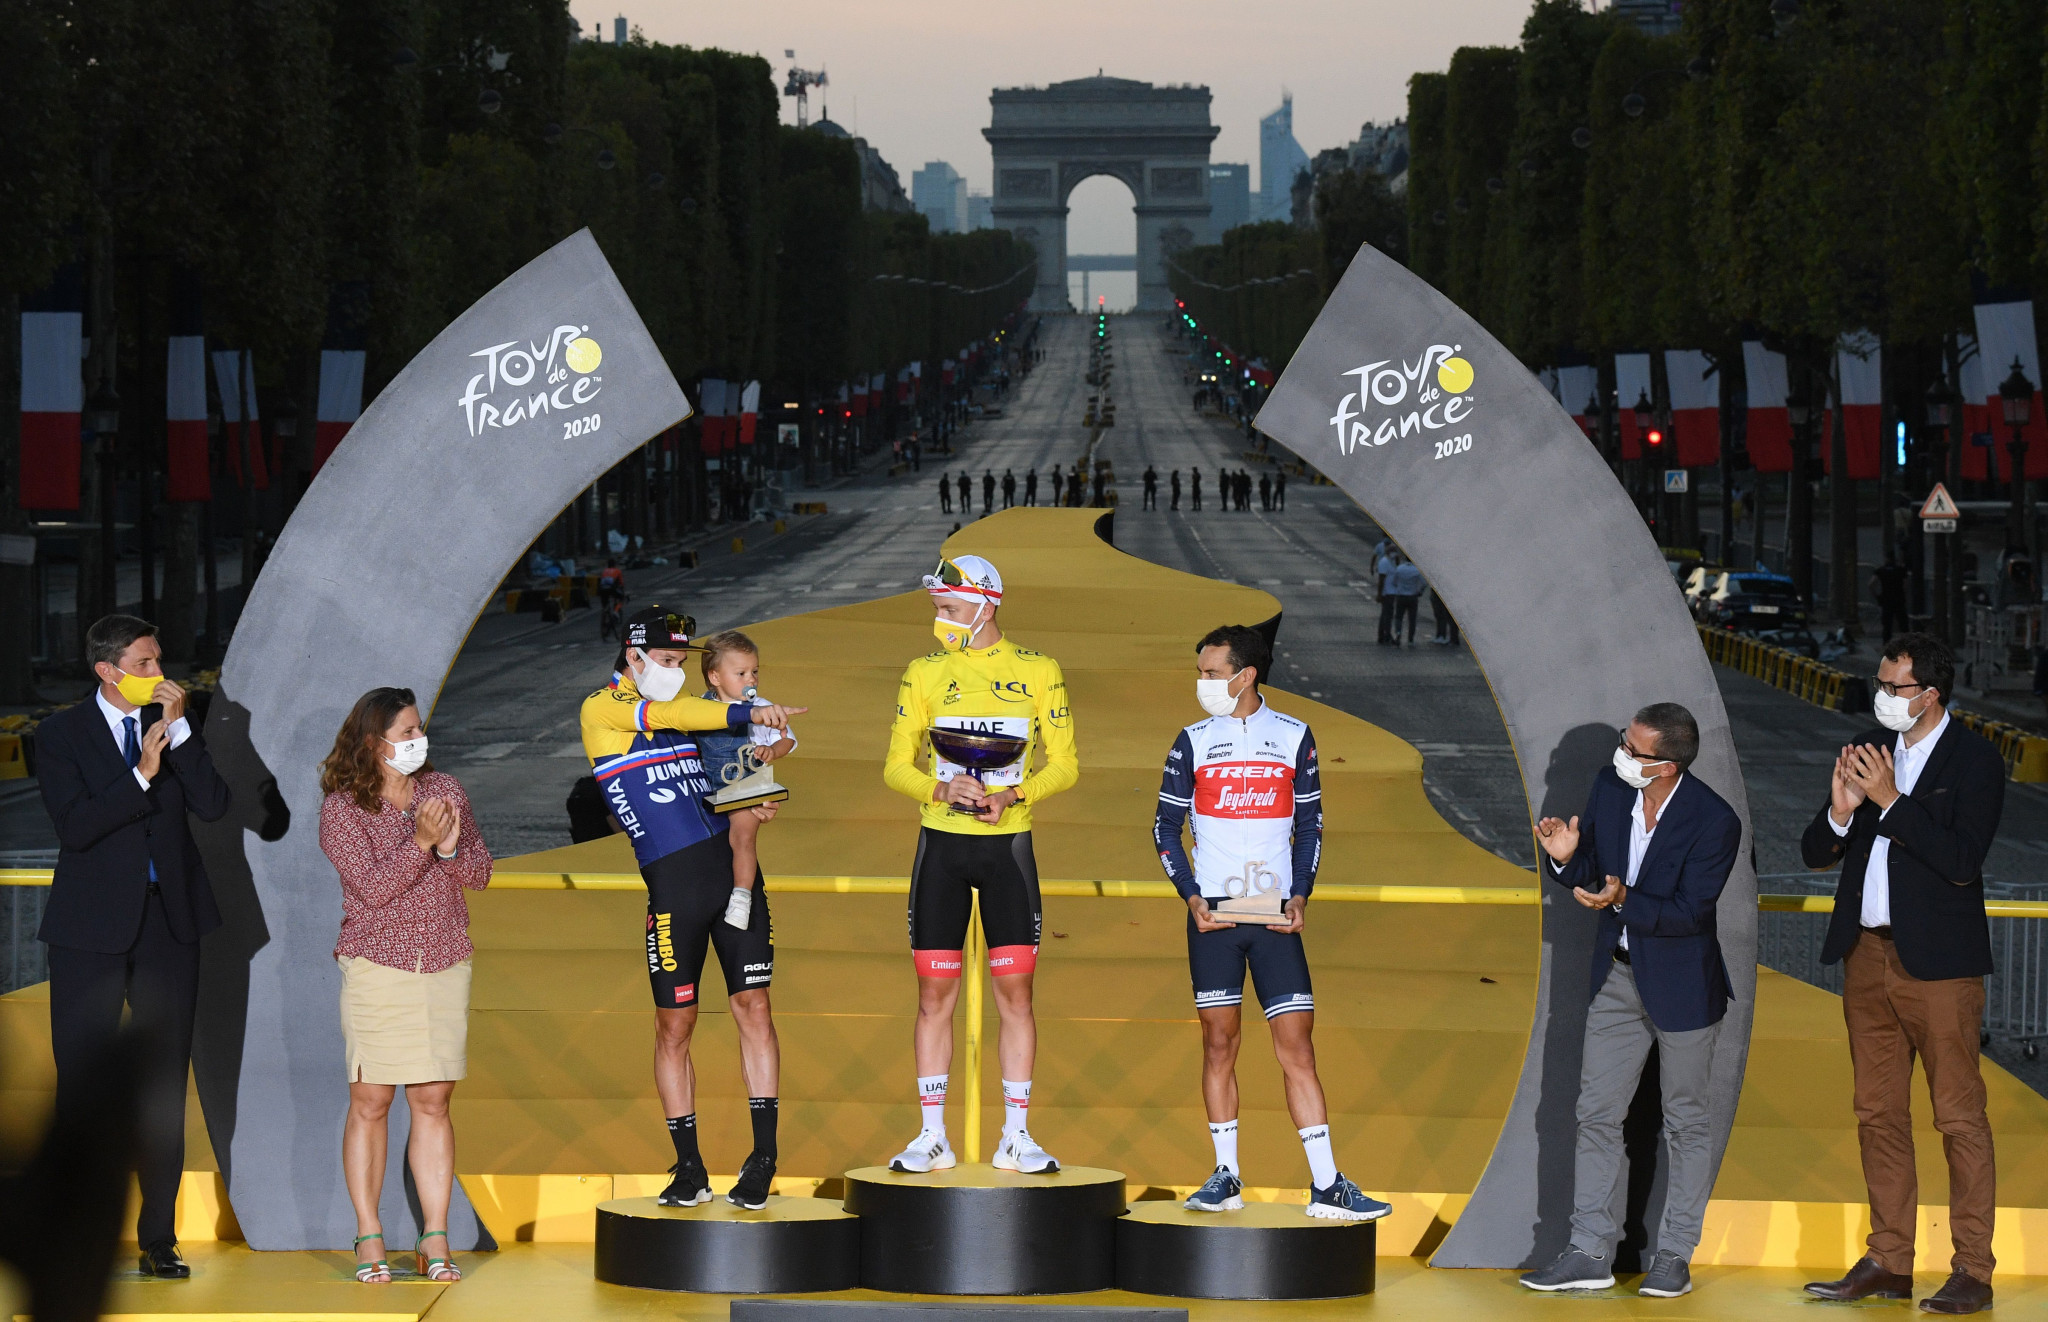 The Tour de France was completed in Paris today with Tadej Pogacar taking the yellow jersey ©Getty Images